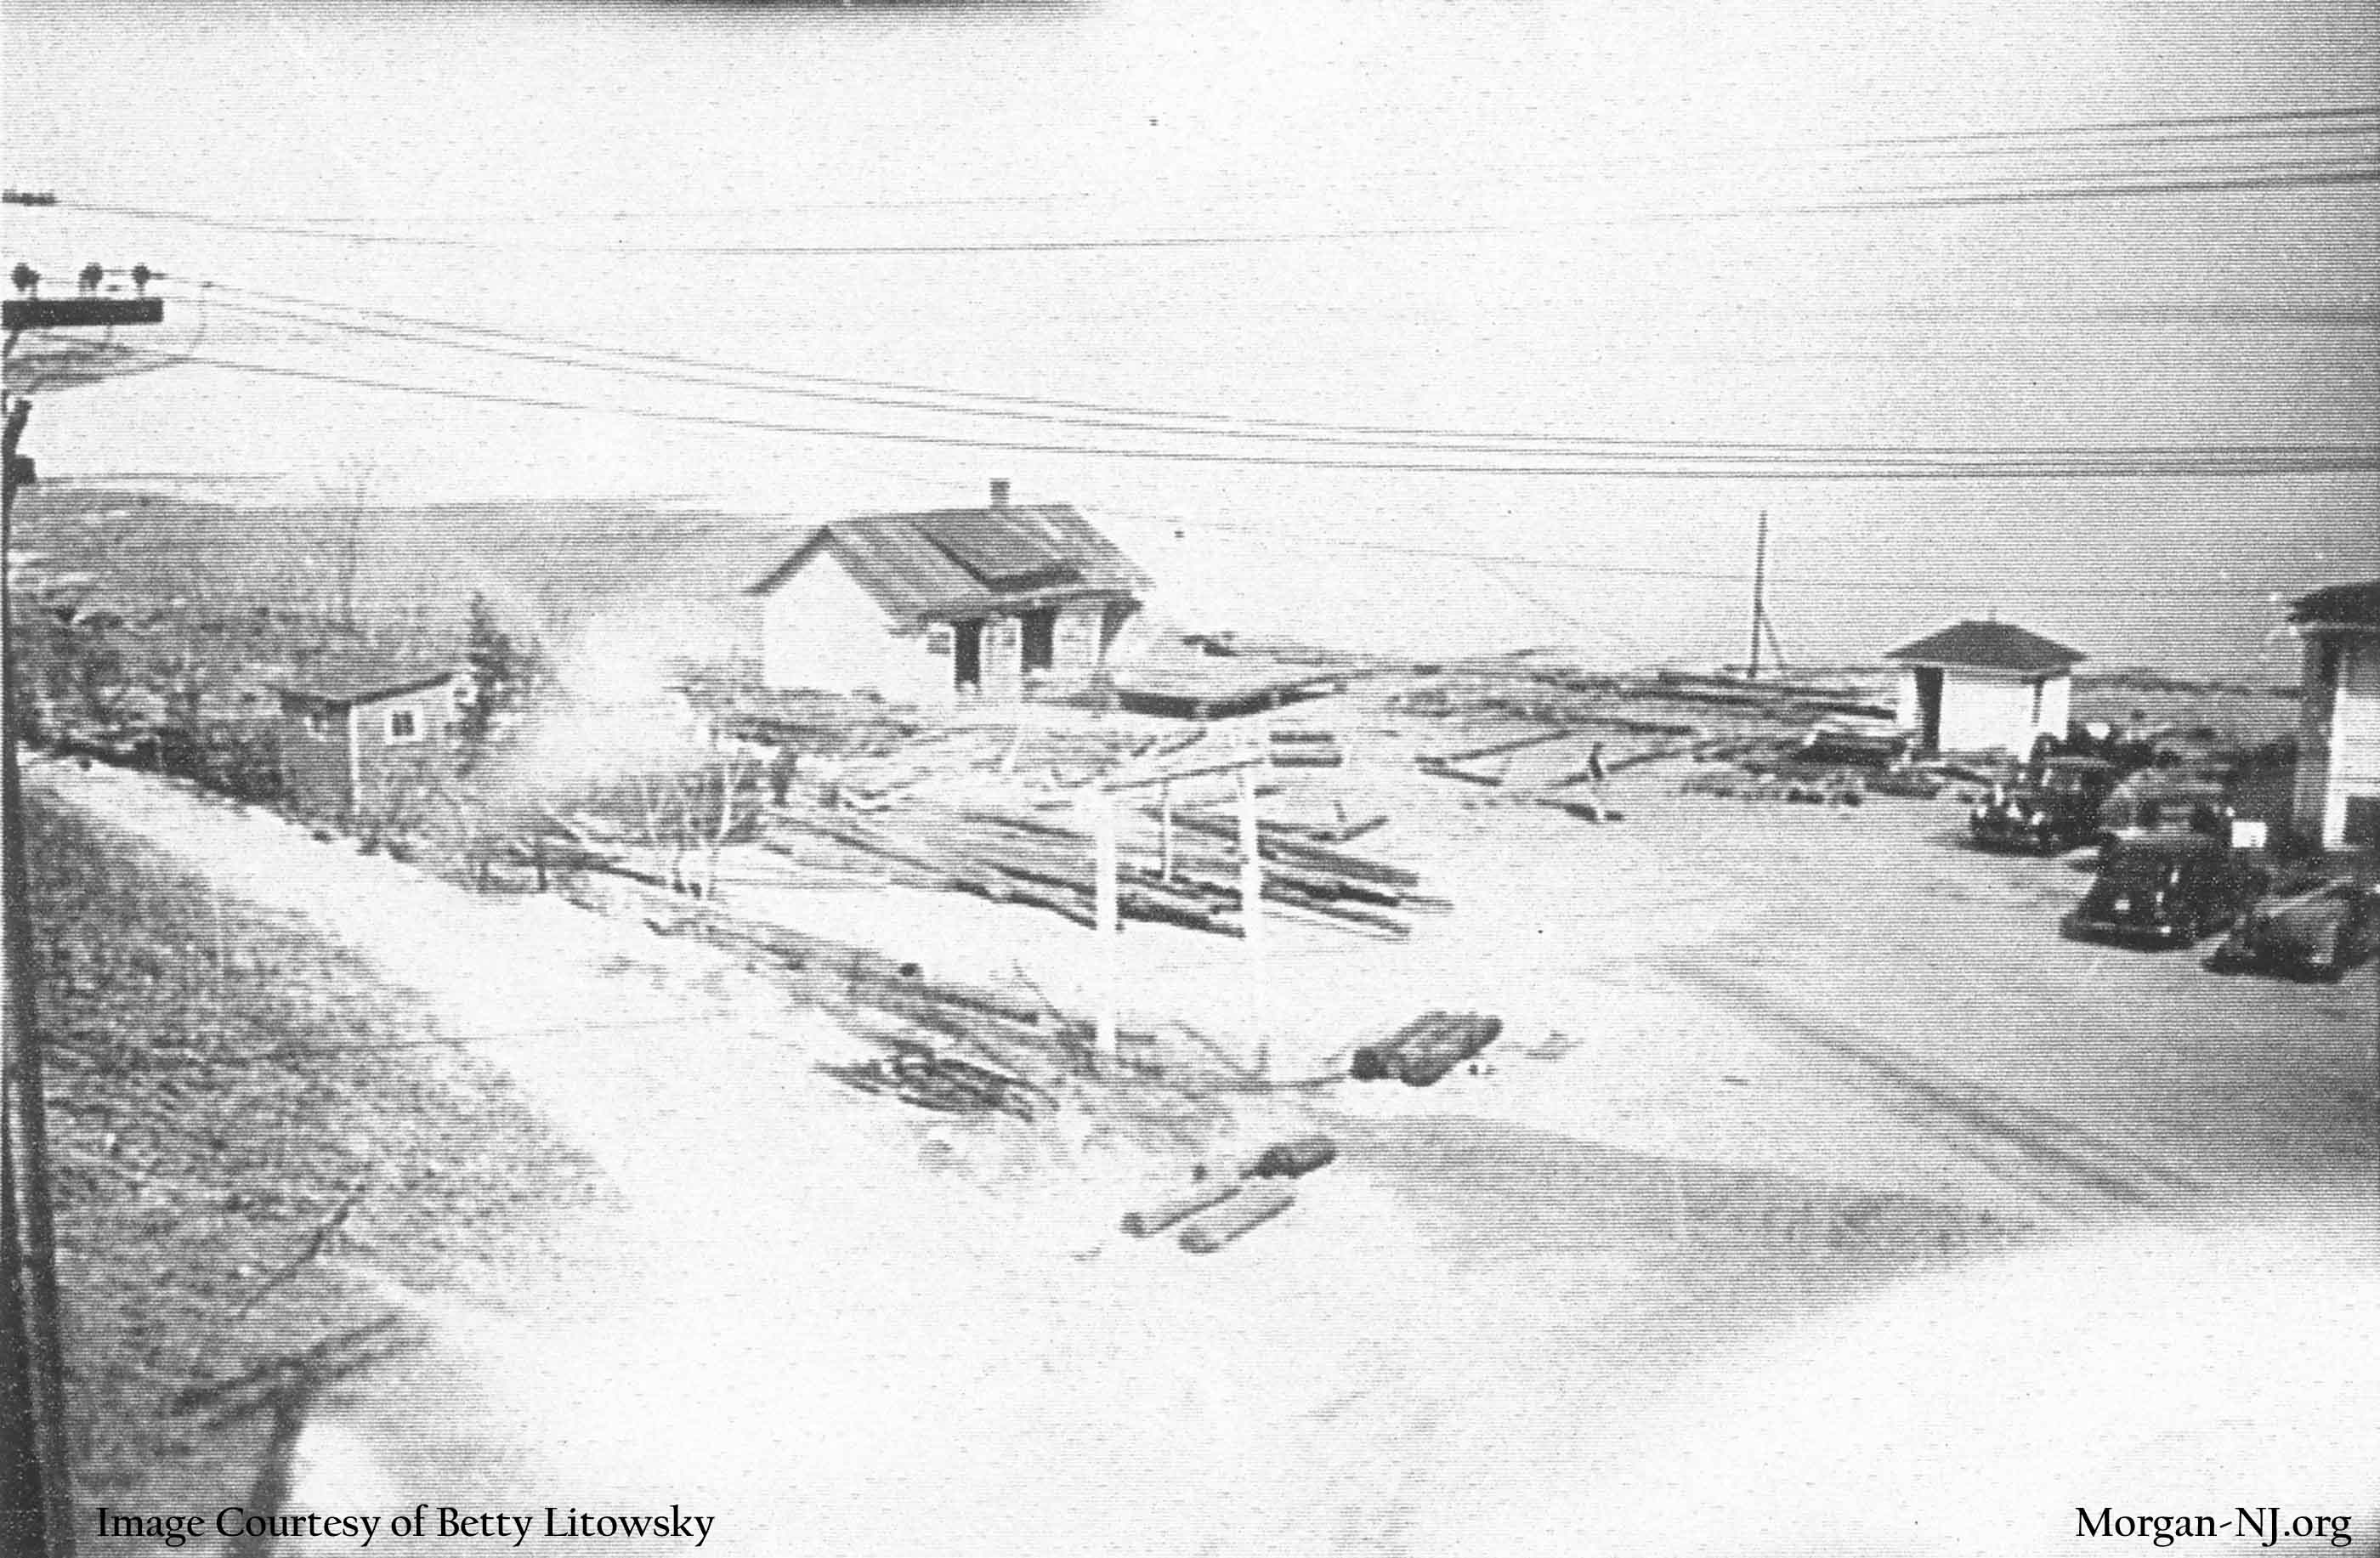 Looking north to the yard at the Robert E. Lee Inn in preparation for installation of the World War II Army surplus barracks as seen from Route 35, circa 1945. Image courtesy of Betty Macrae Litowsky.